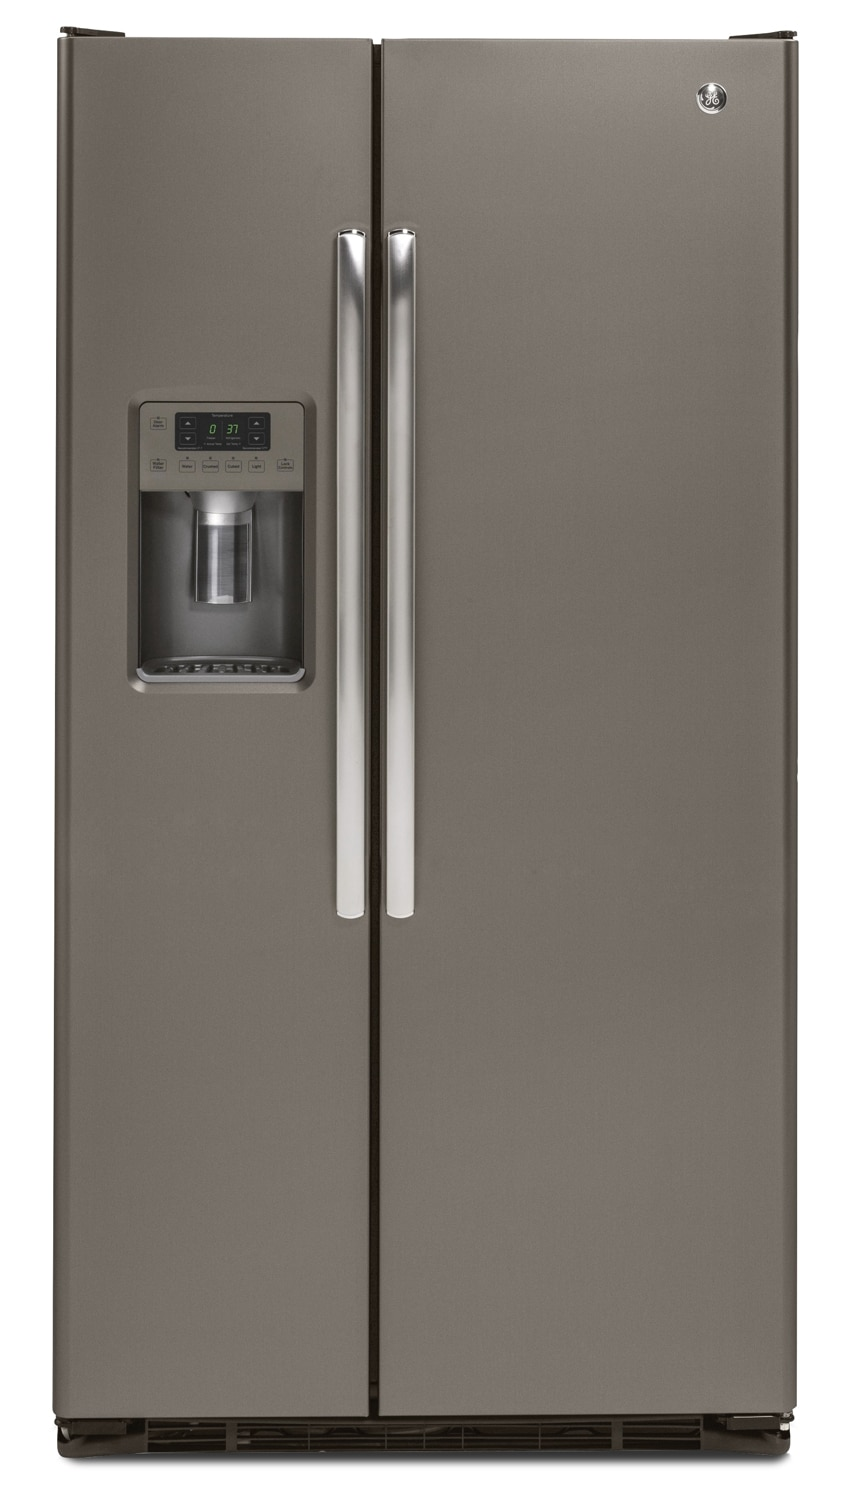 Refrigerators and Freezers - GE 21.9 Cu. Ft. Side-by-Side Refrigerator with Water and Ice Dispenser – Slate